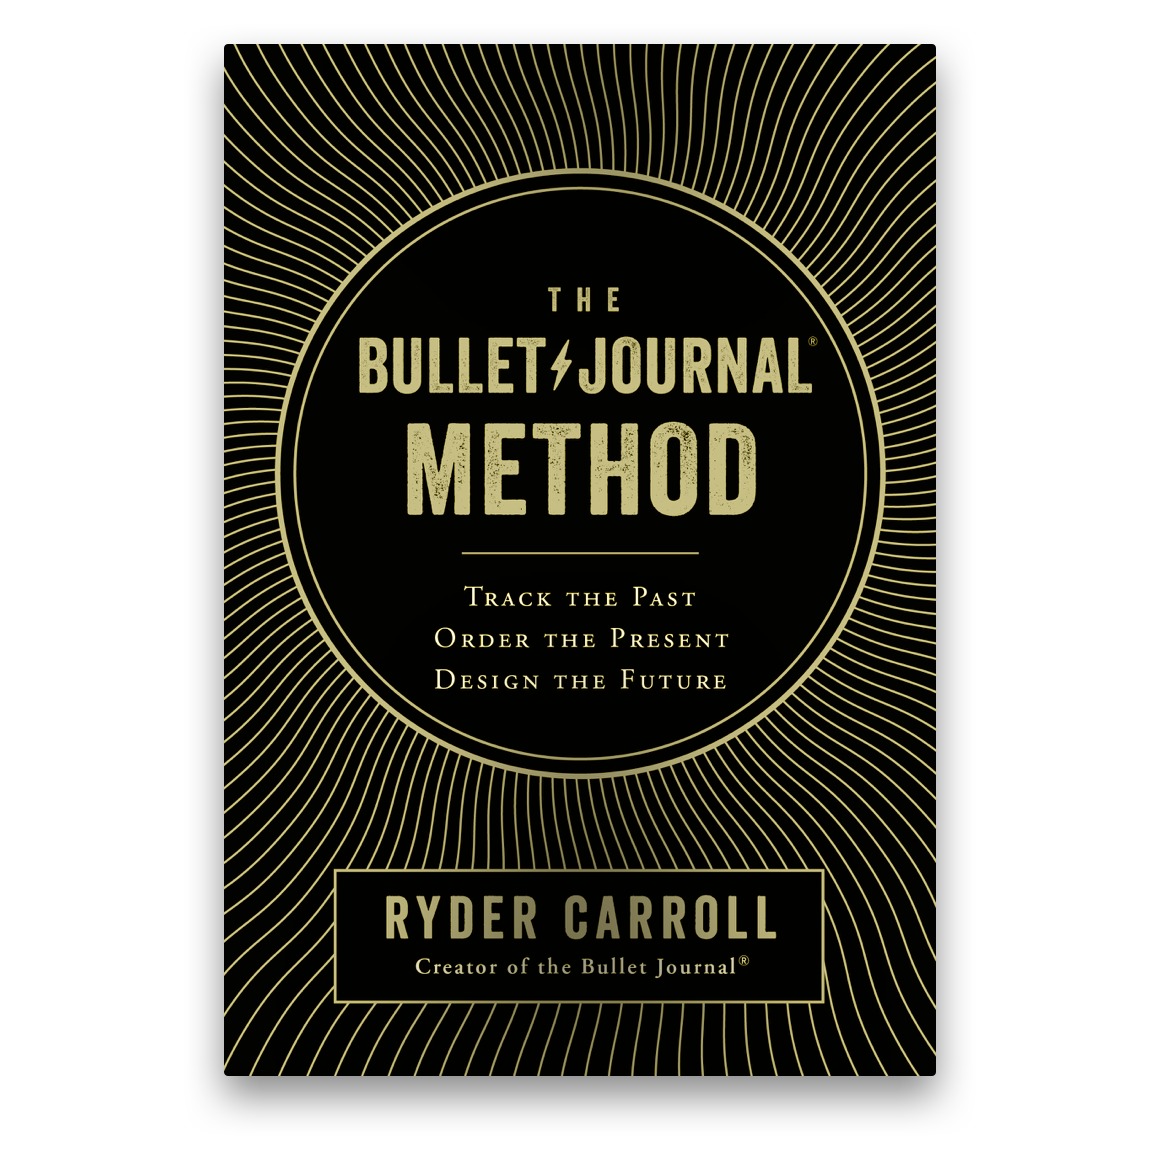 The Bullet Journal Method US Cover